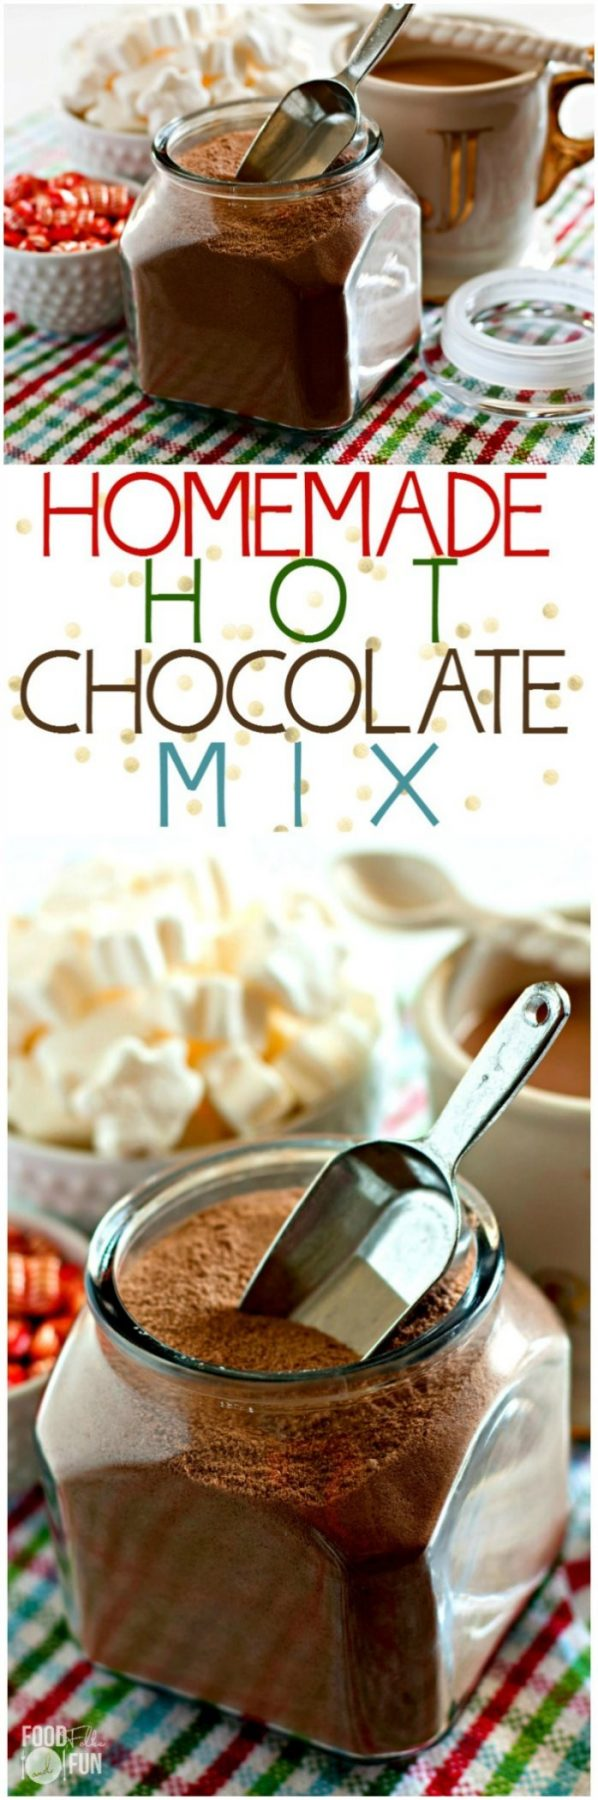 This homemade hot chocolate mix makes a rich, indulgent, chocolaty treat. It is SO easy to make, let me show you how!